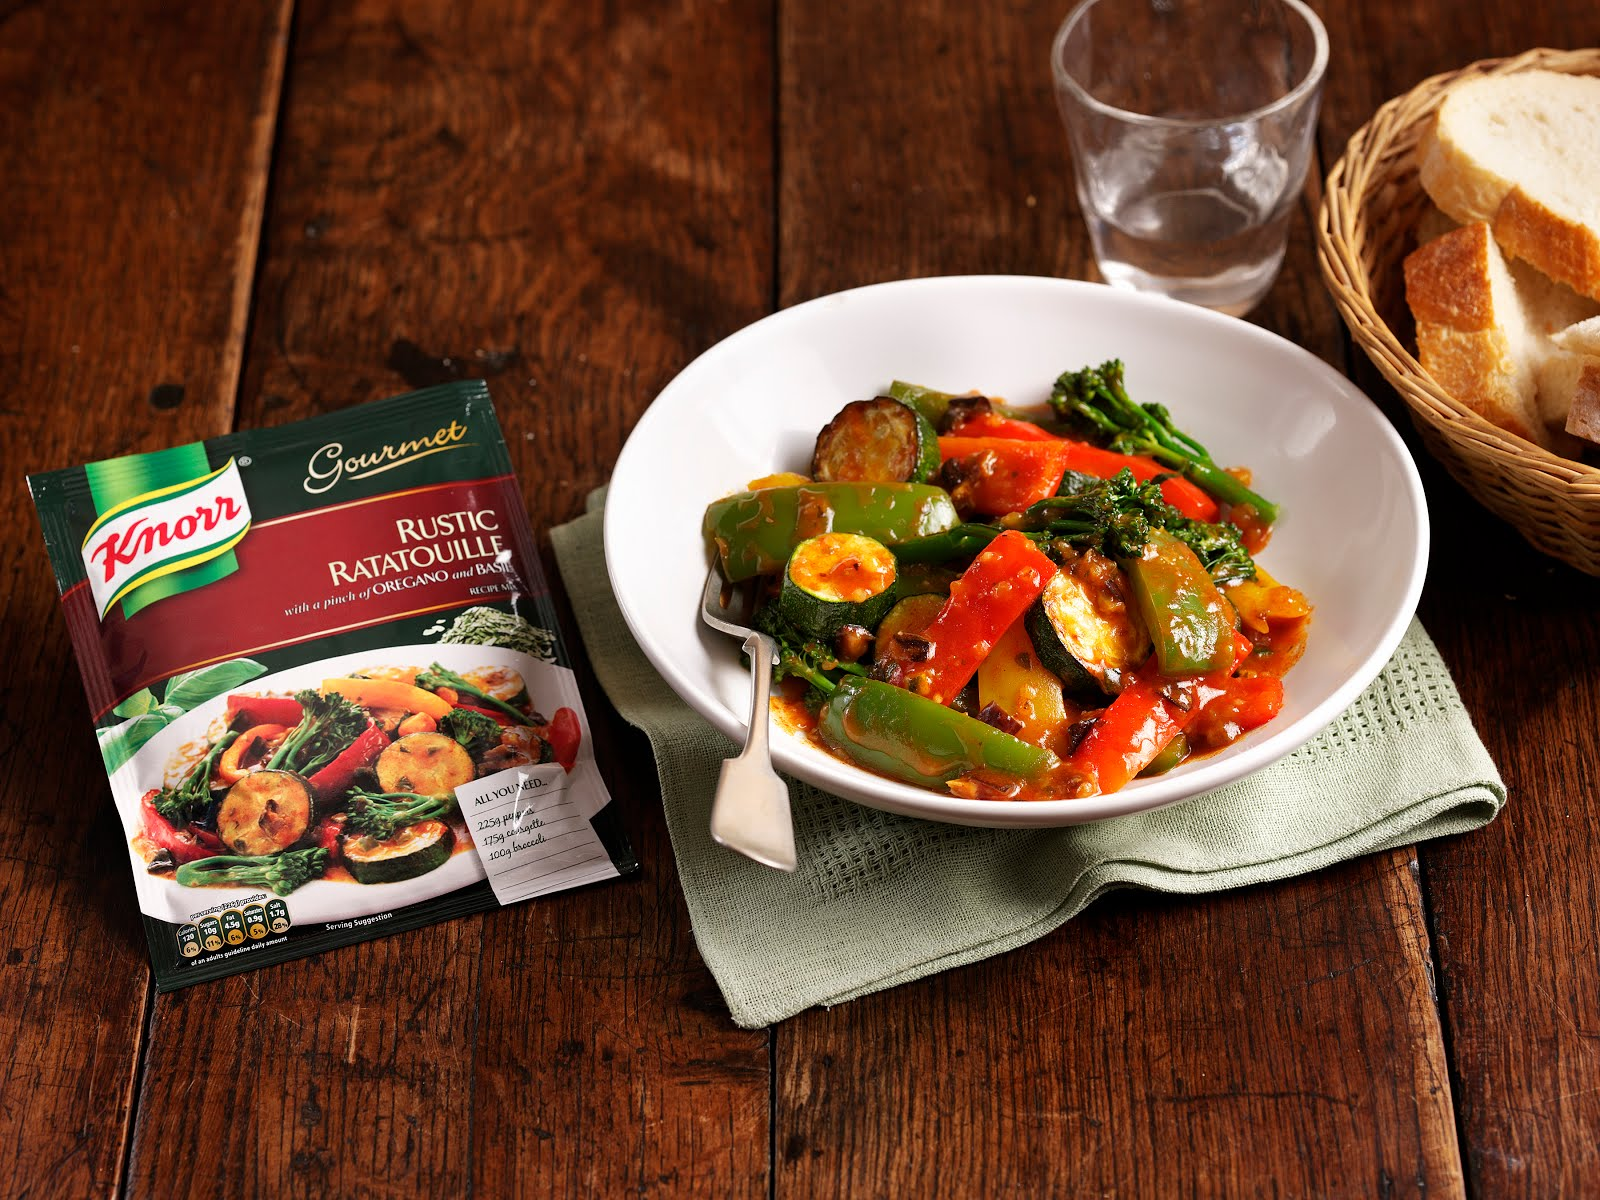 rustic ratatouille rustic ratatouille with a pinch of oregano and